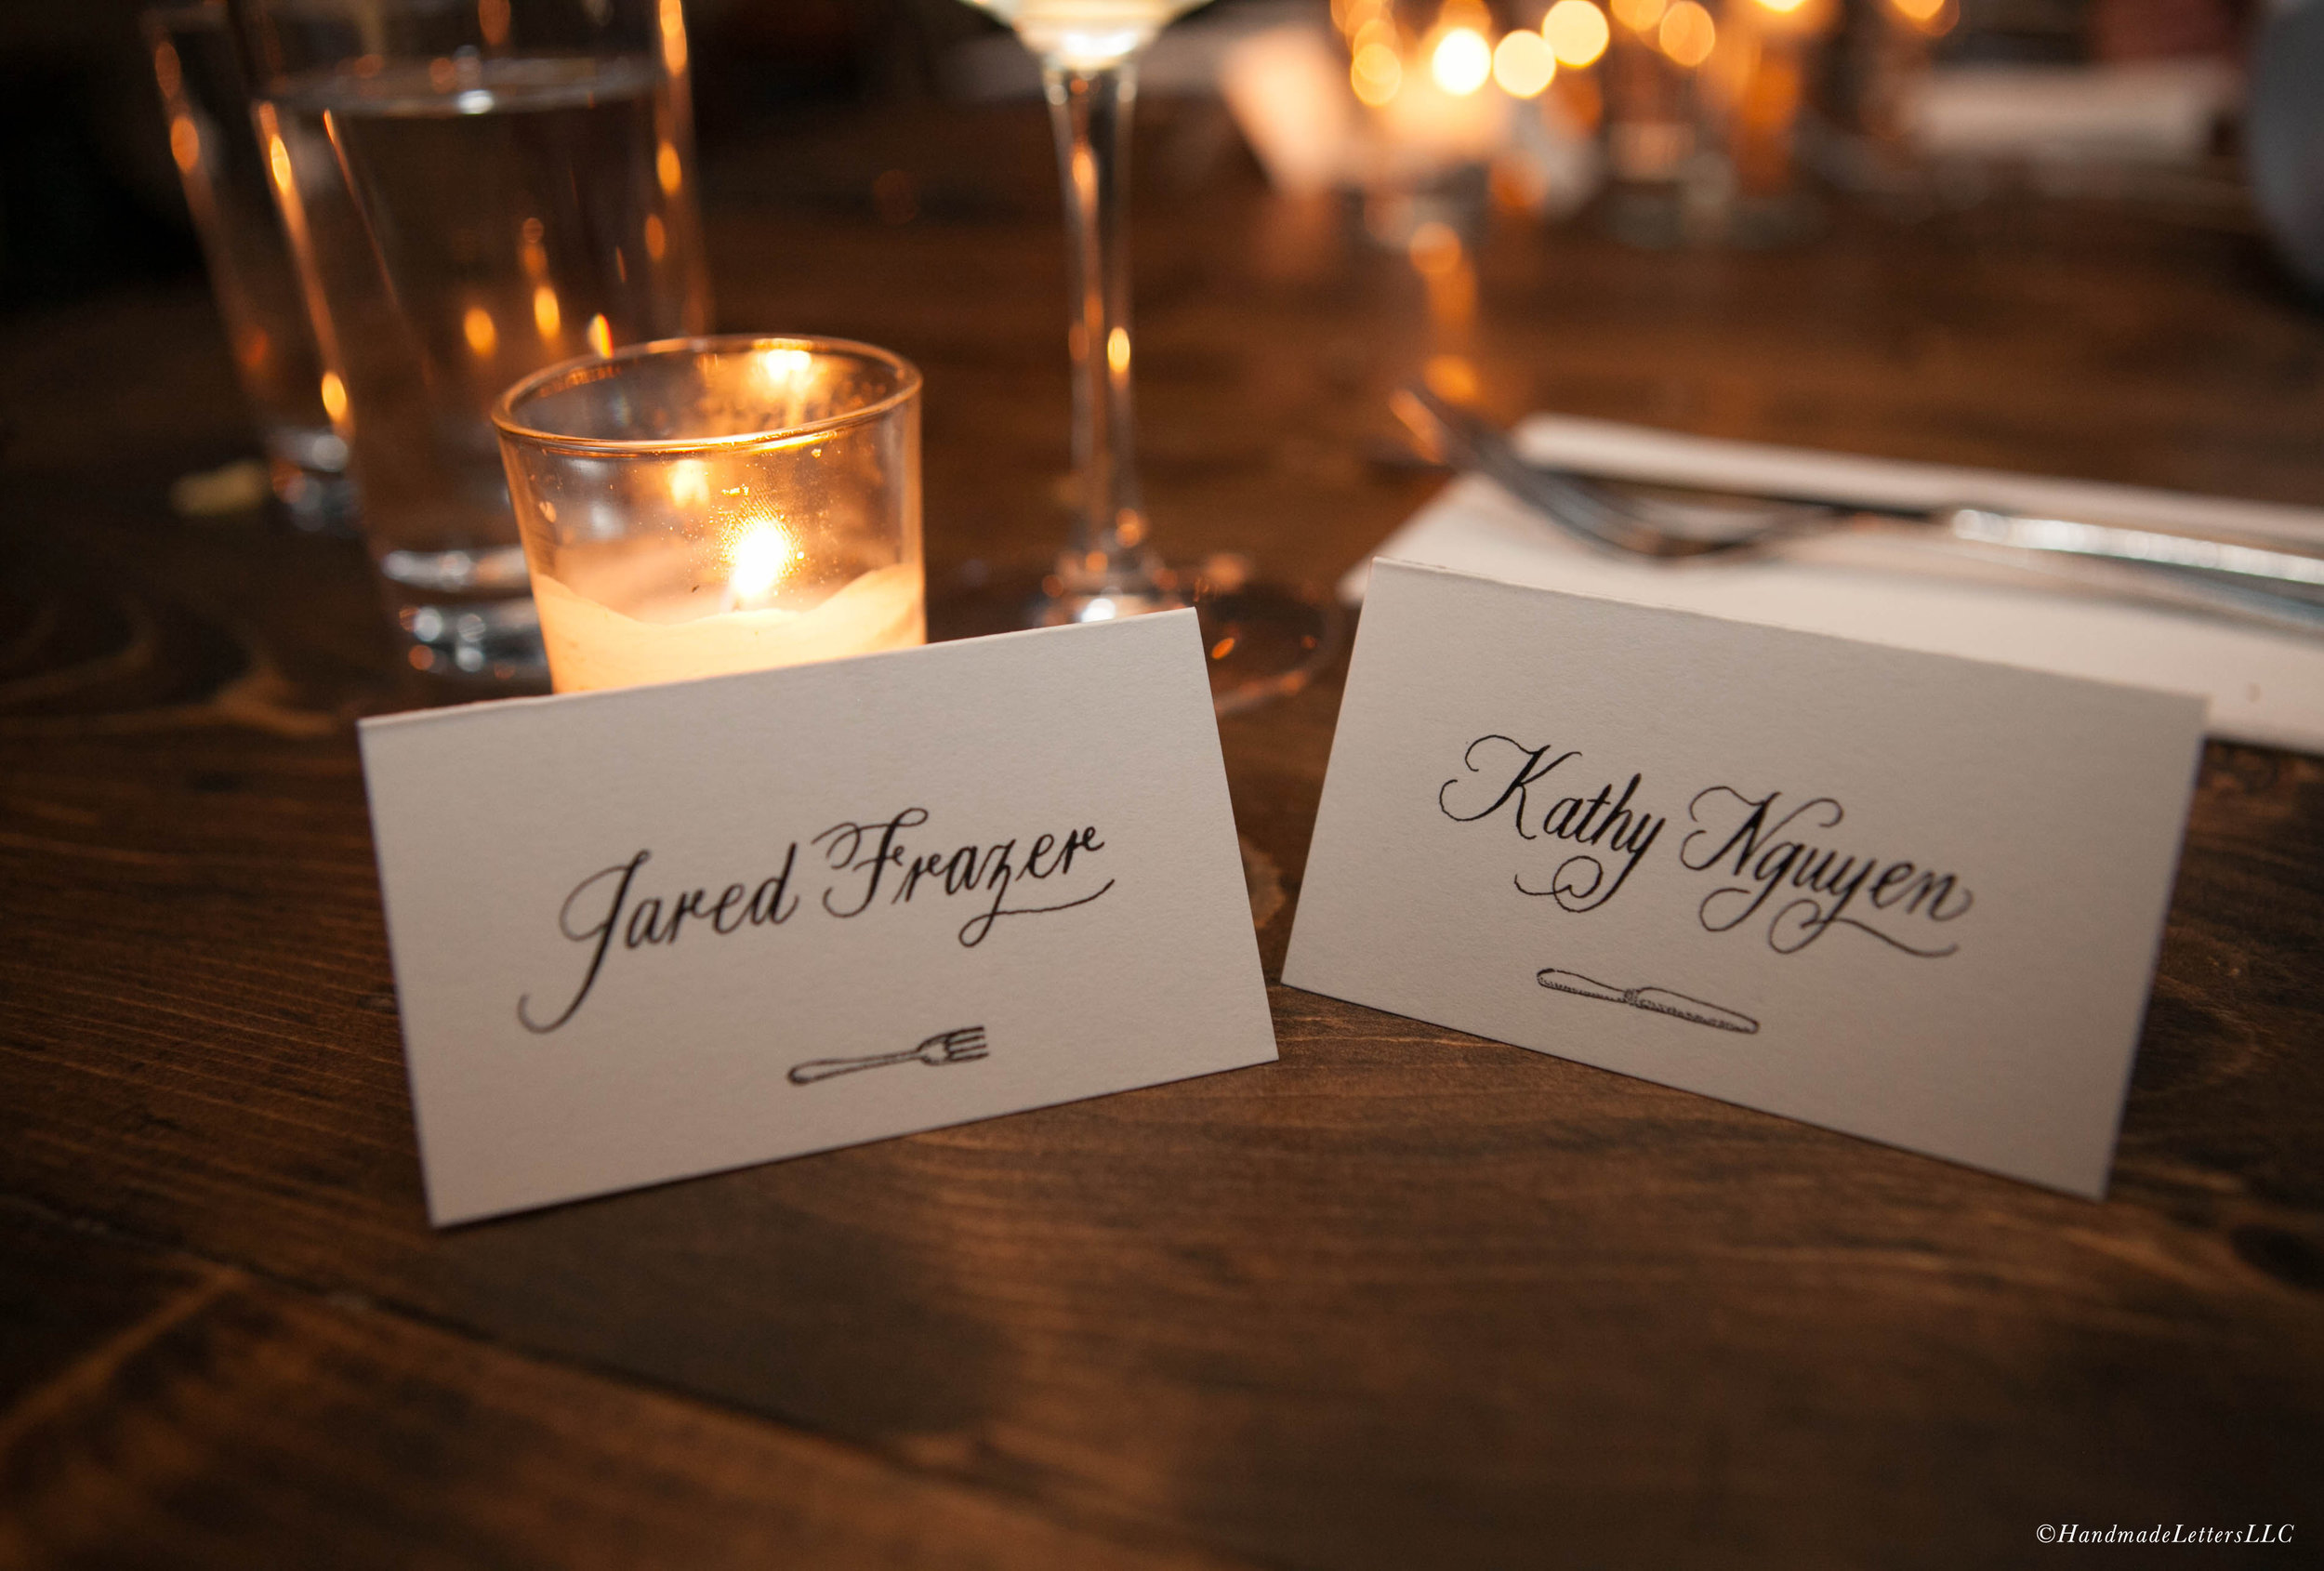 Handmade Letters - Calligraphed dinner cards. Photo courtesy of Leslie dela Vega.